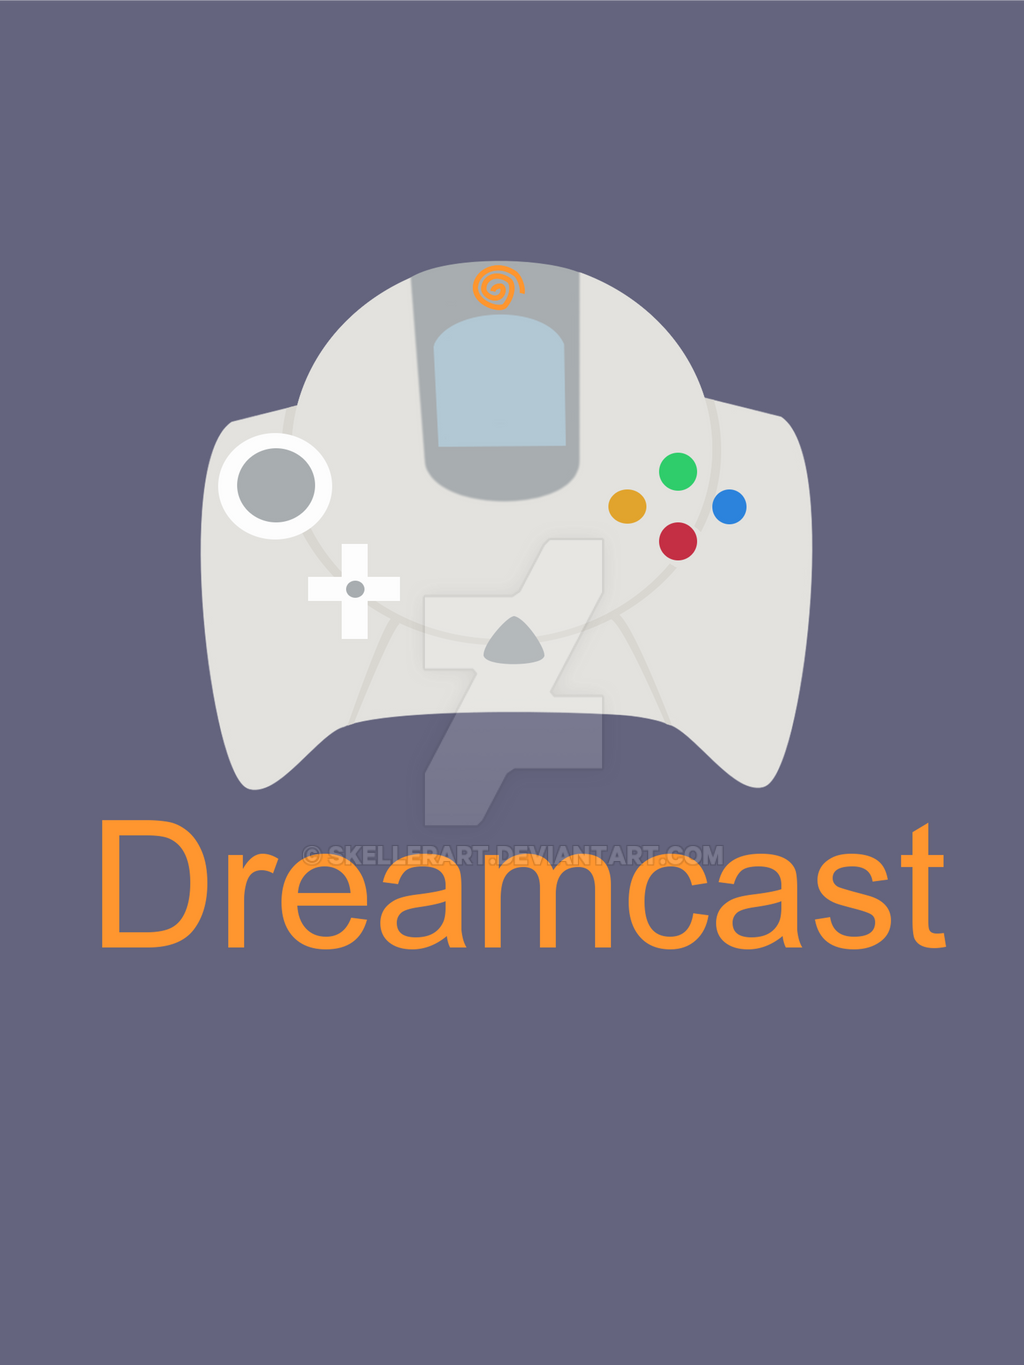 Dreamcast by SkellerArt on DeviantArt